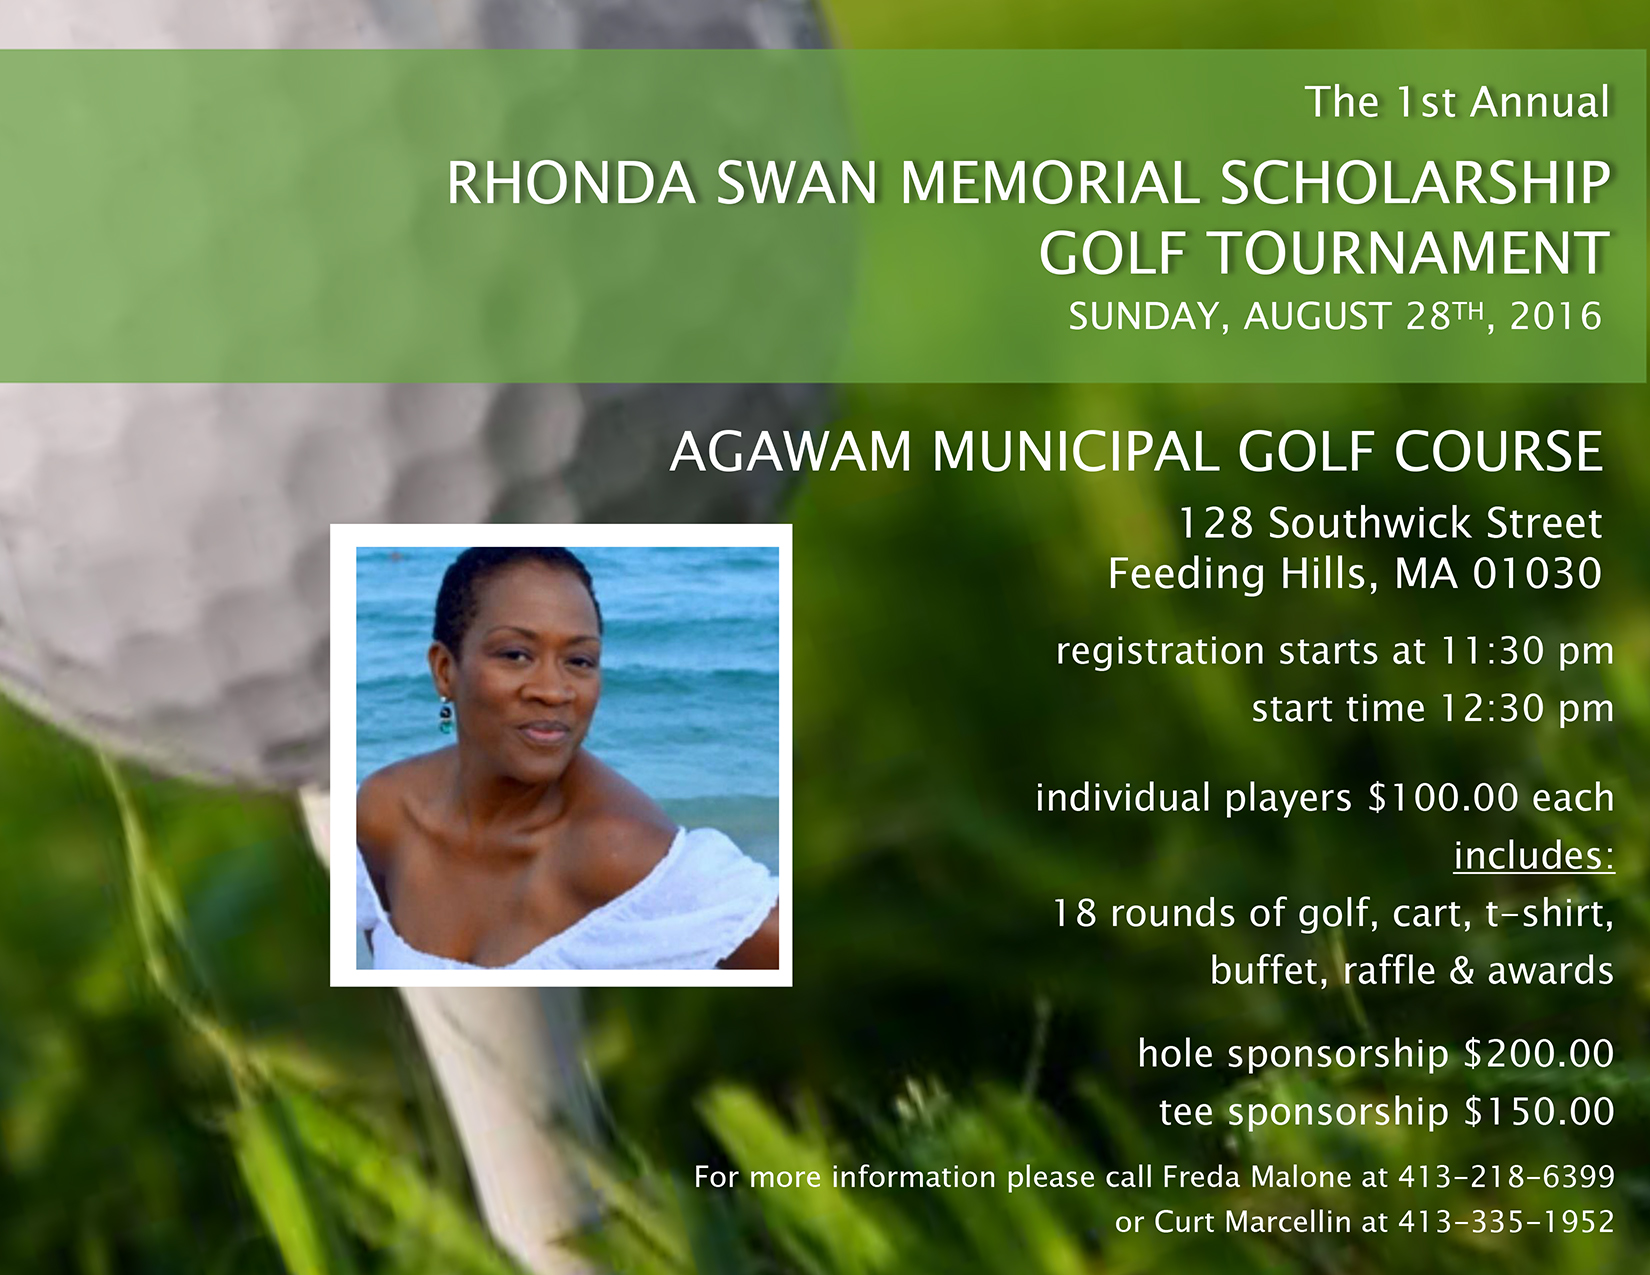 http://www.afampointofview.com/wp-content/uploads/2016/08/Golf-flyer-2_large.jpg